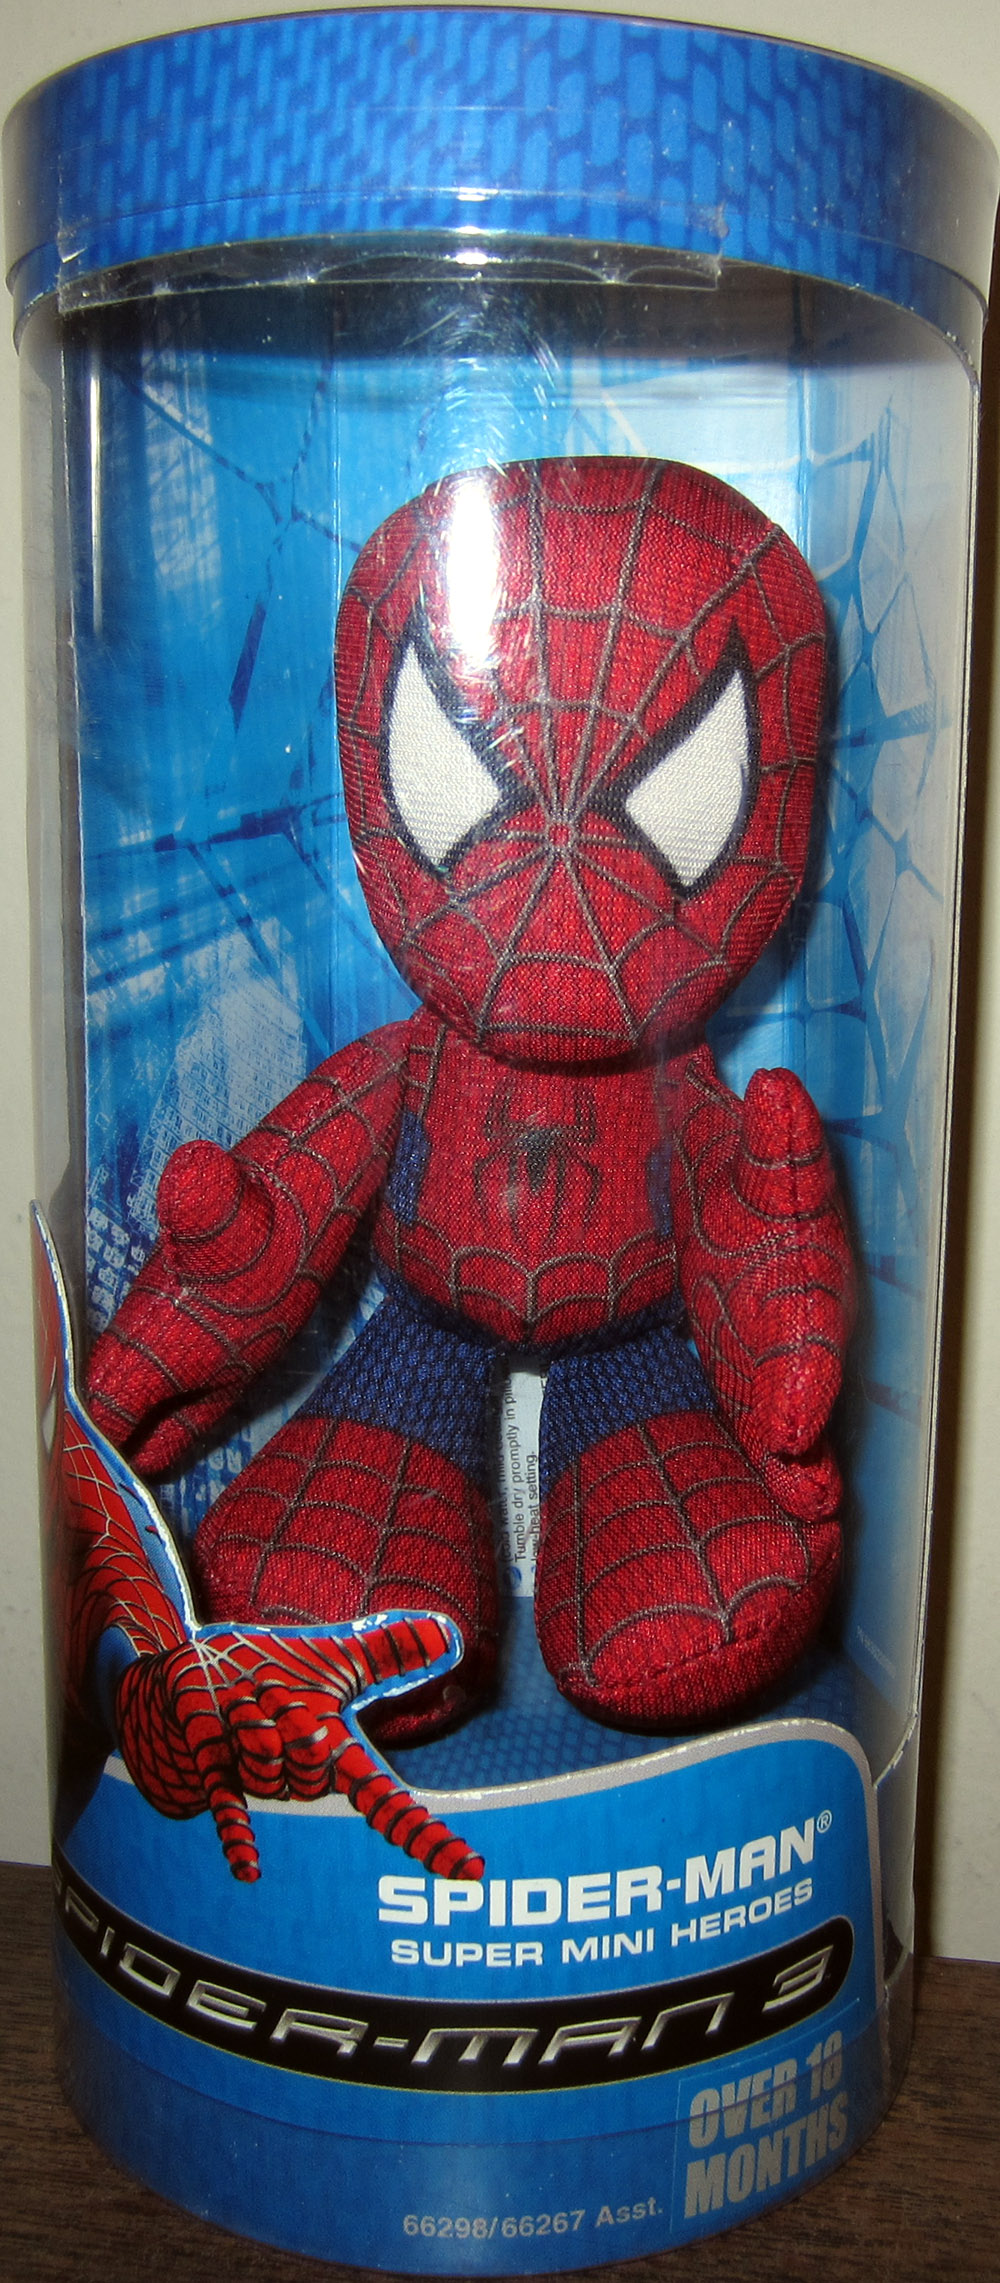 Spider-Man 3 Super Mini Heroes Plush